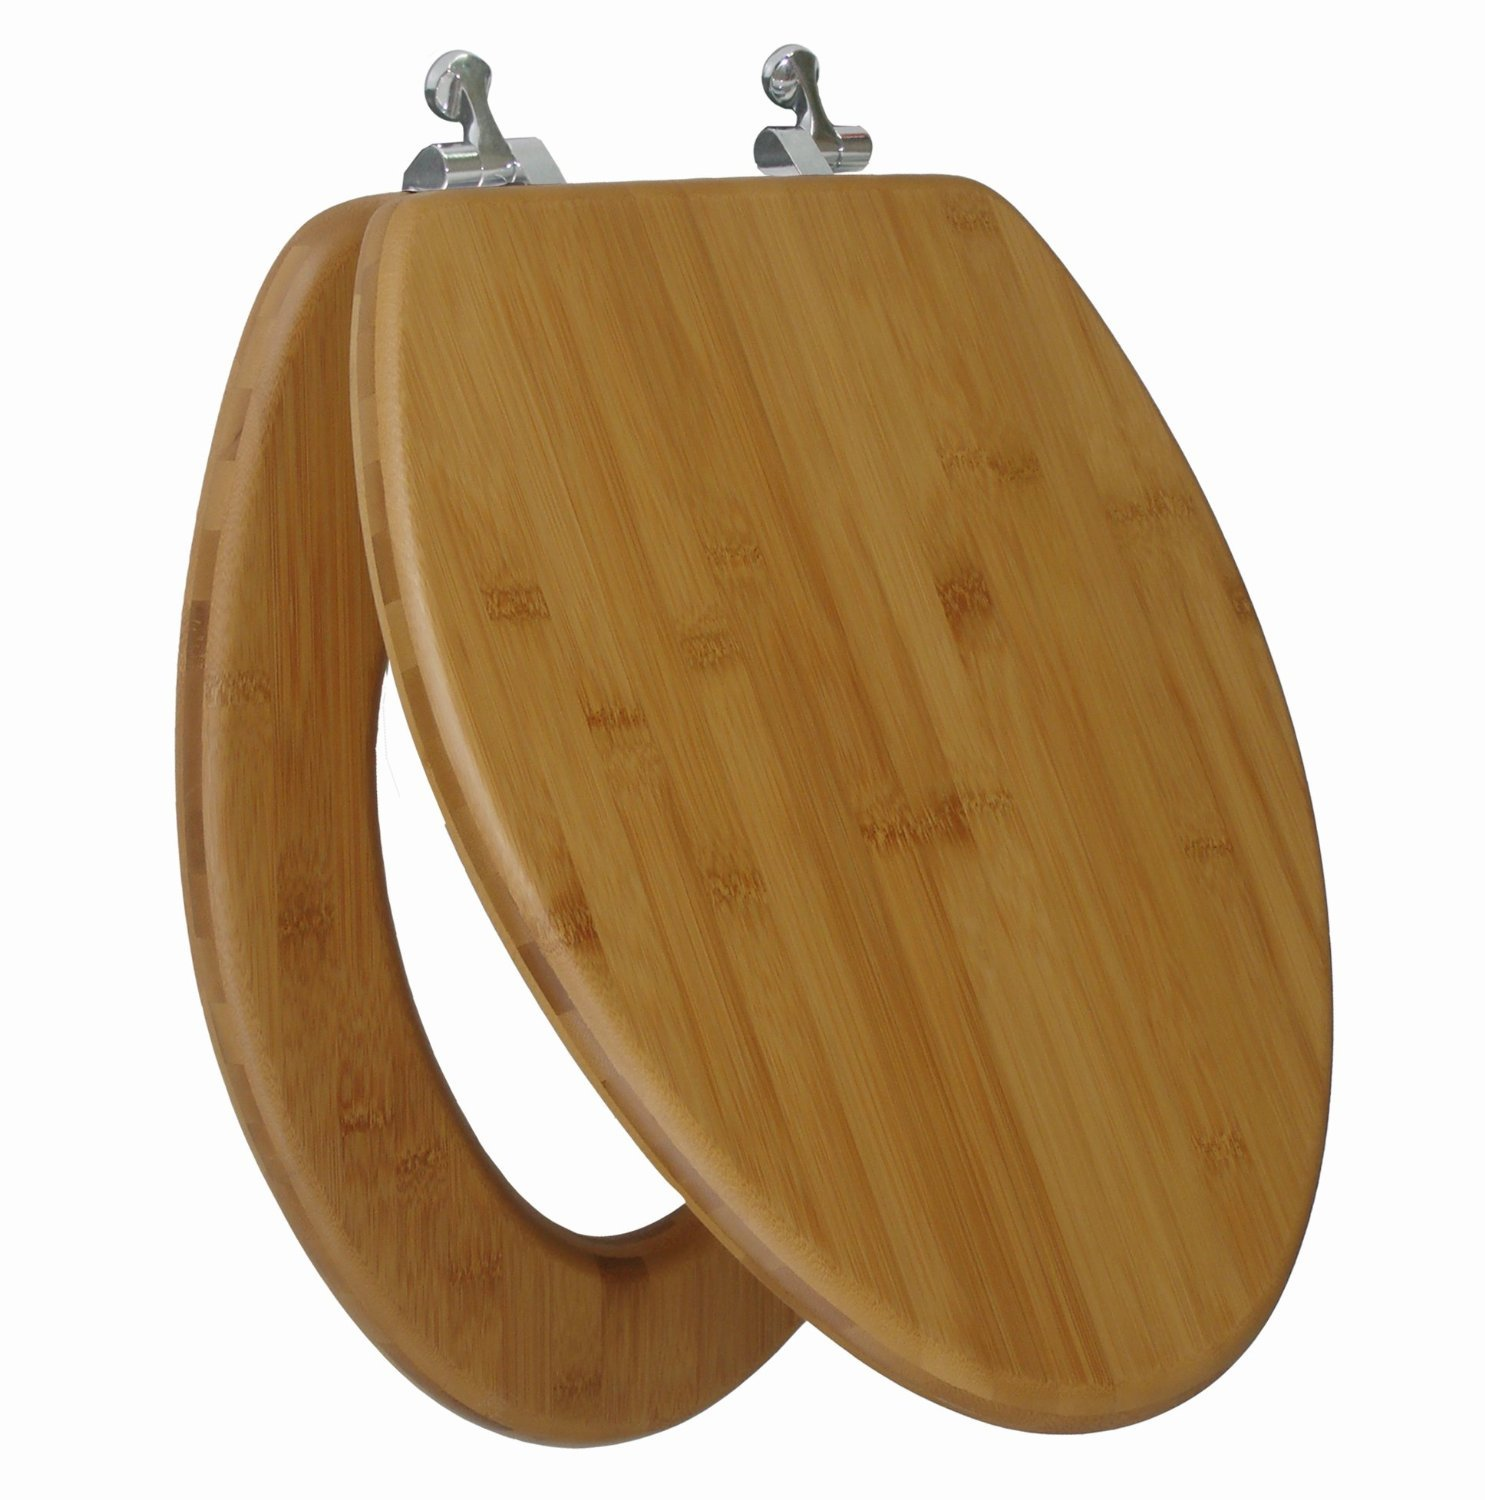 Topseat Elongated Toilet Seat with Nature Bamboo Dark Wood Grain Impeccably Smooth Finish